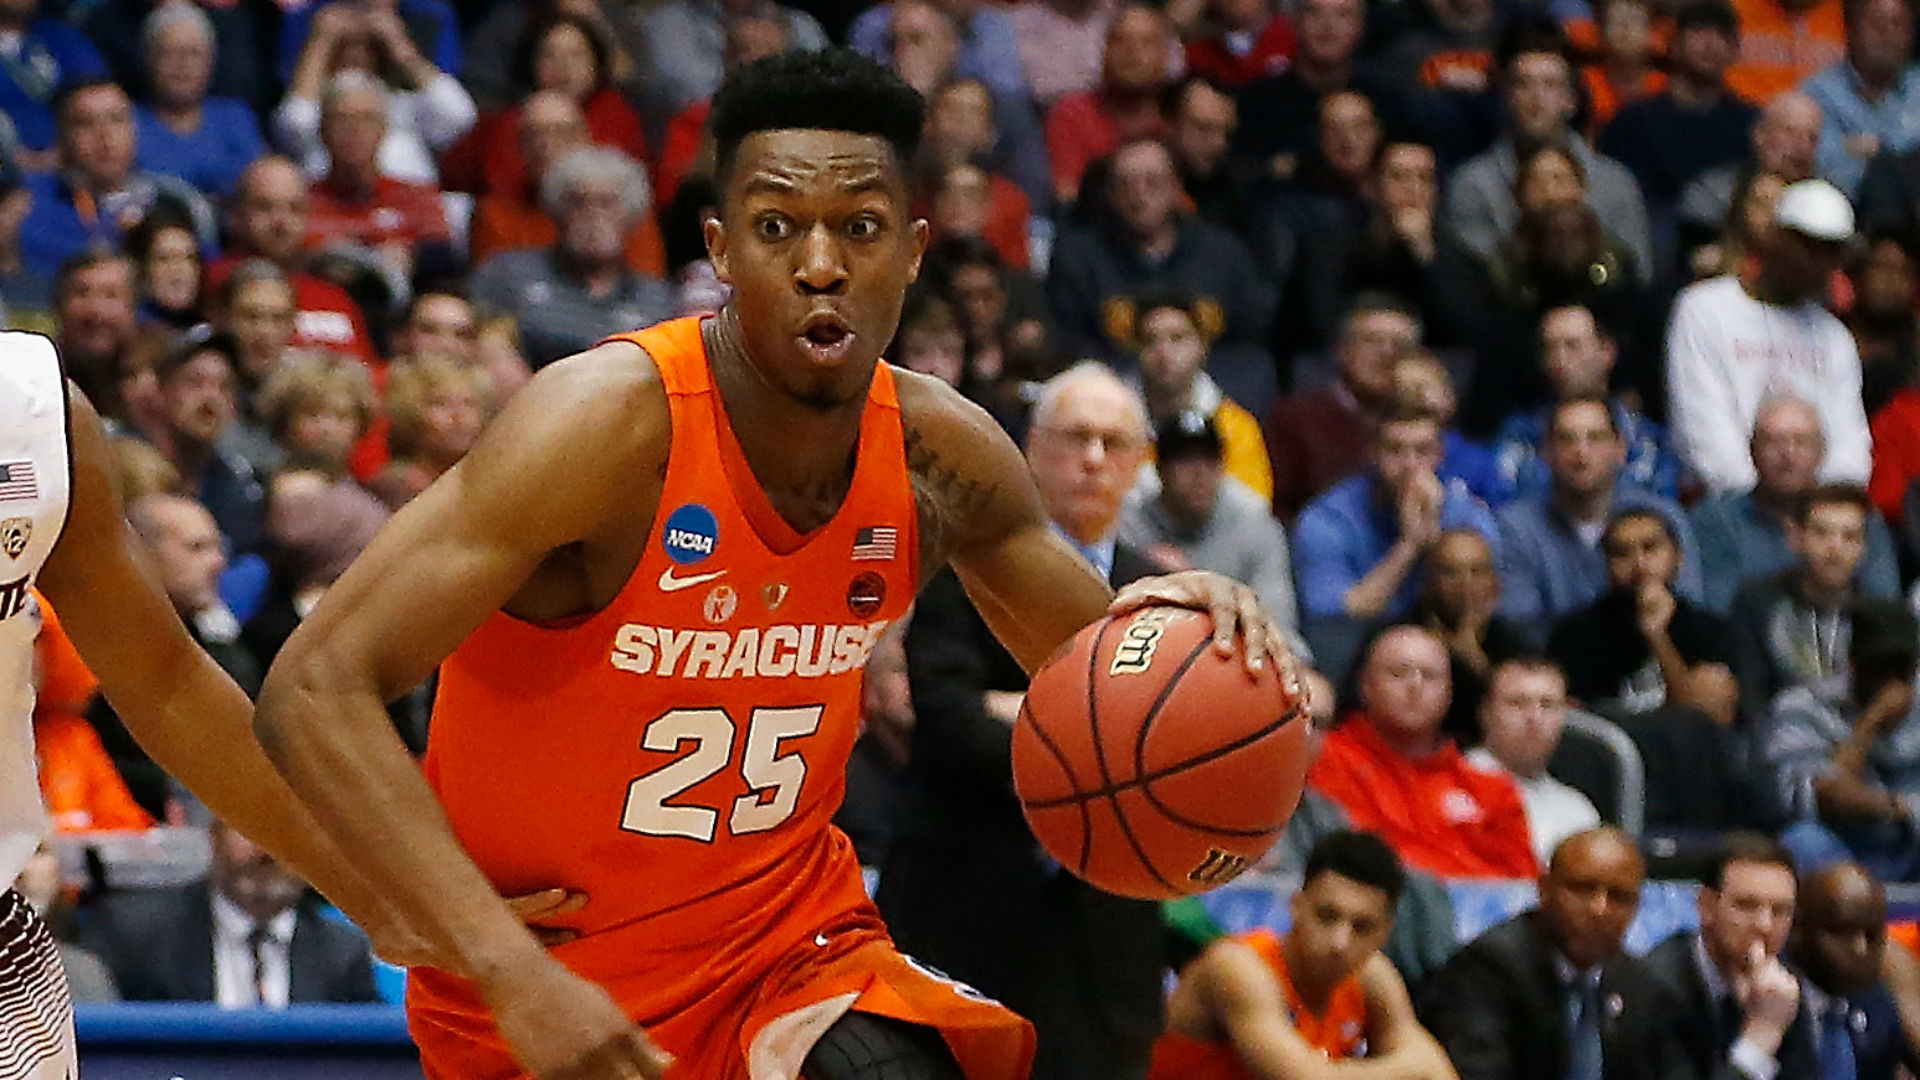 Boeheim, Dixon to meet again when TCU takes on Syracuse